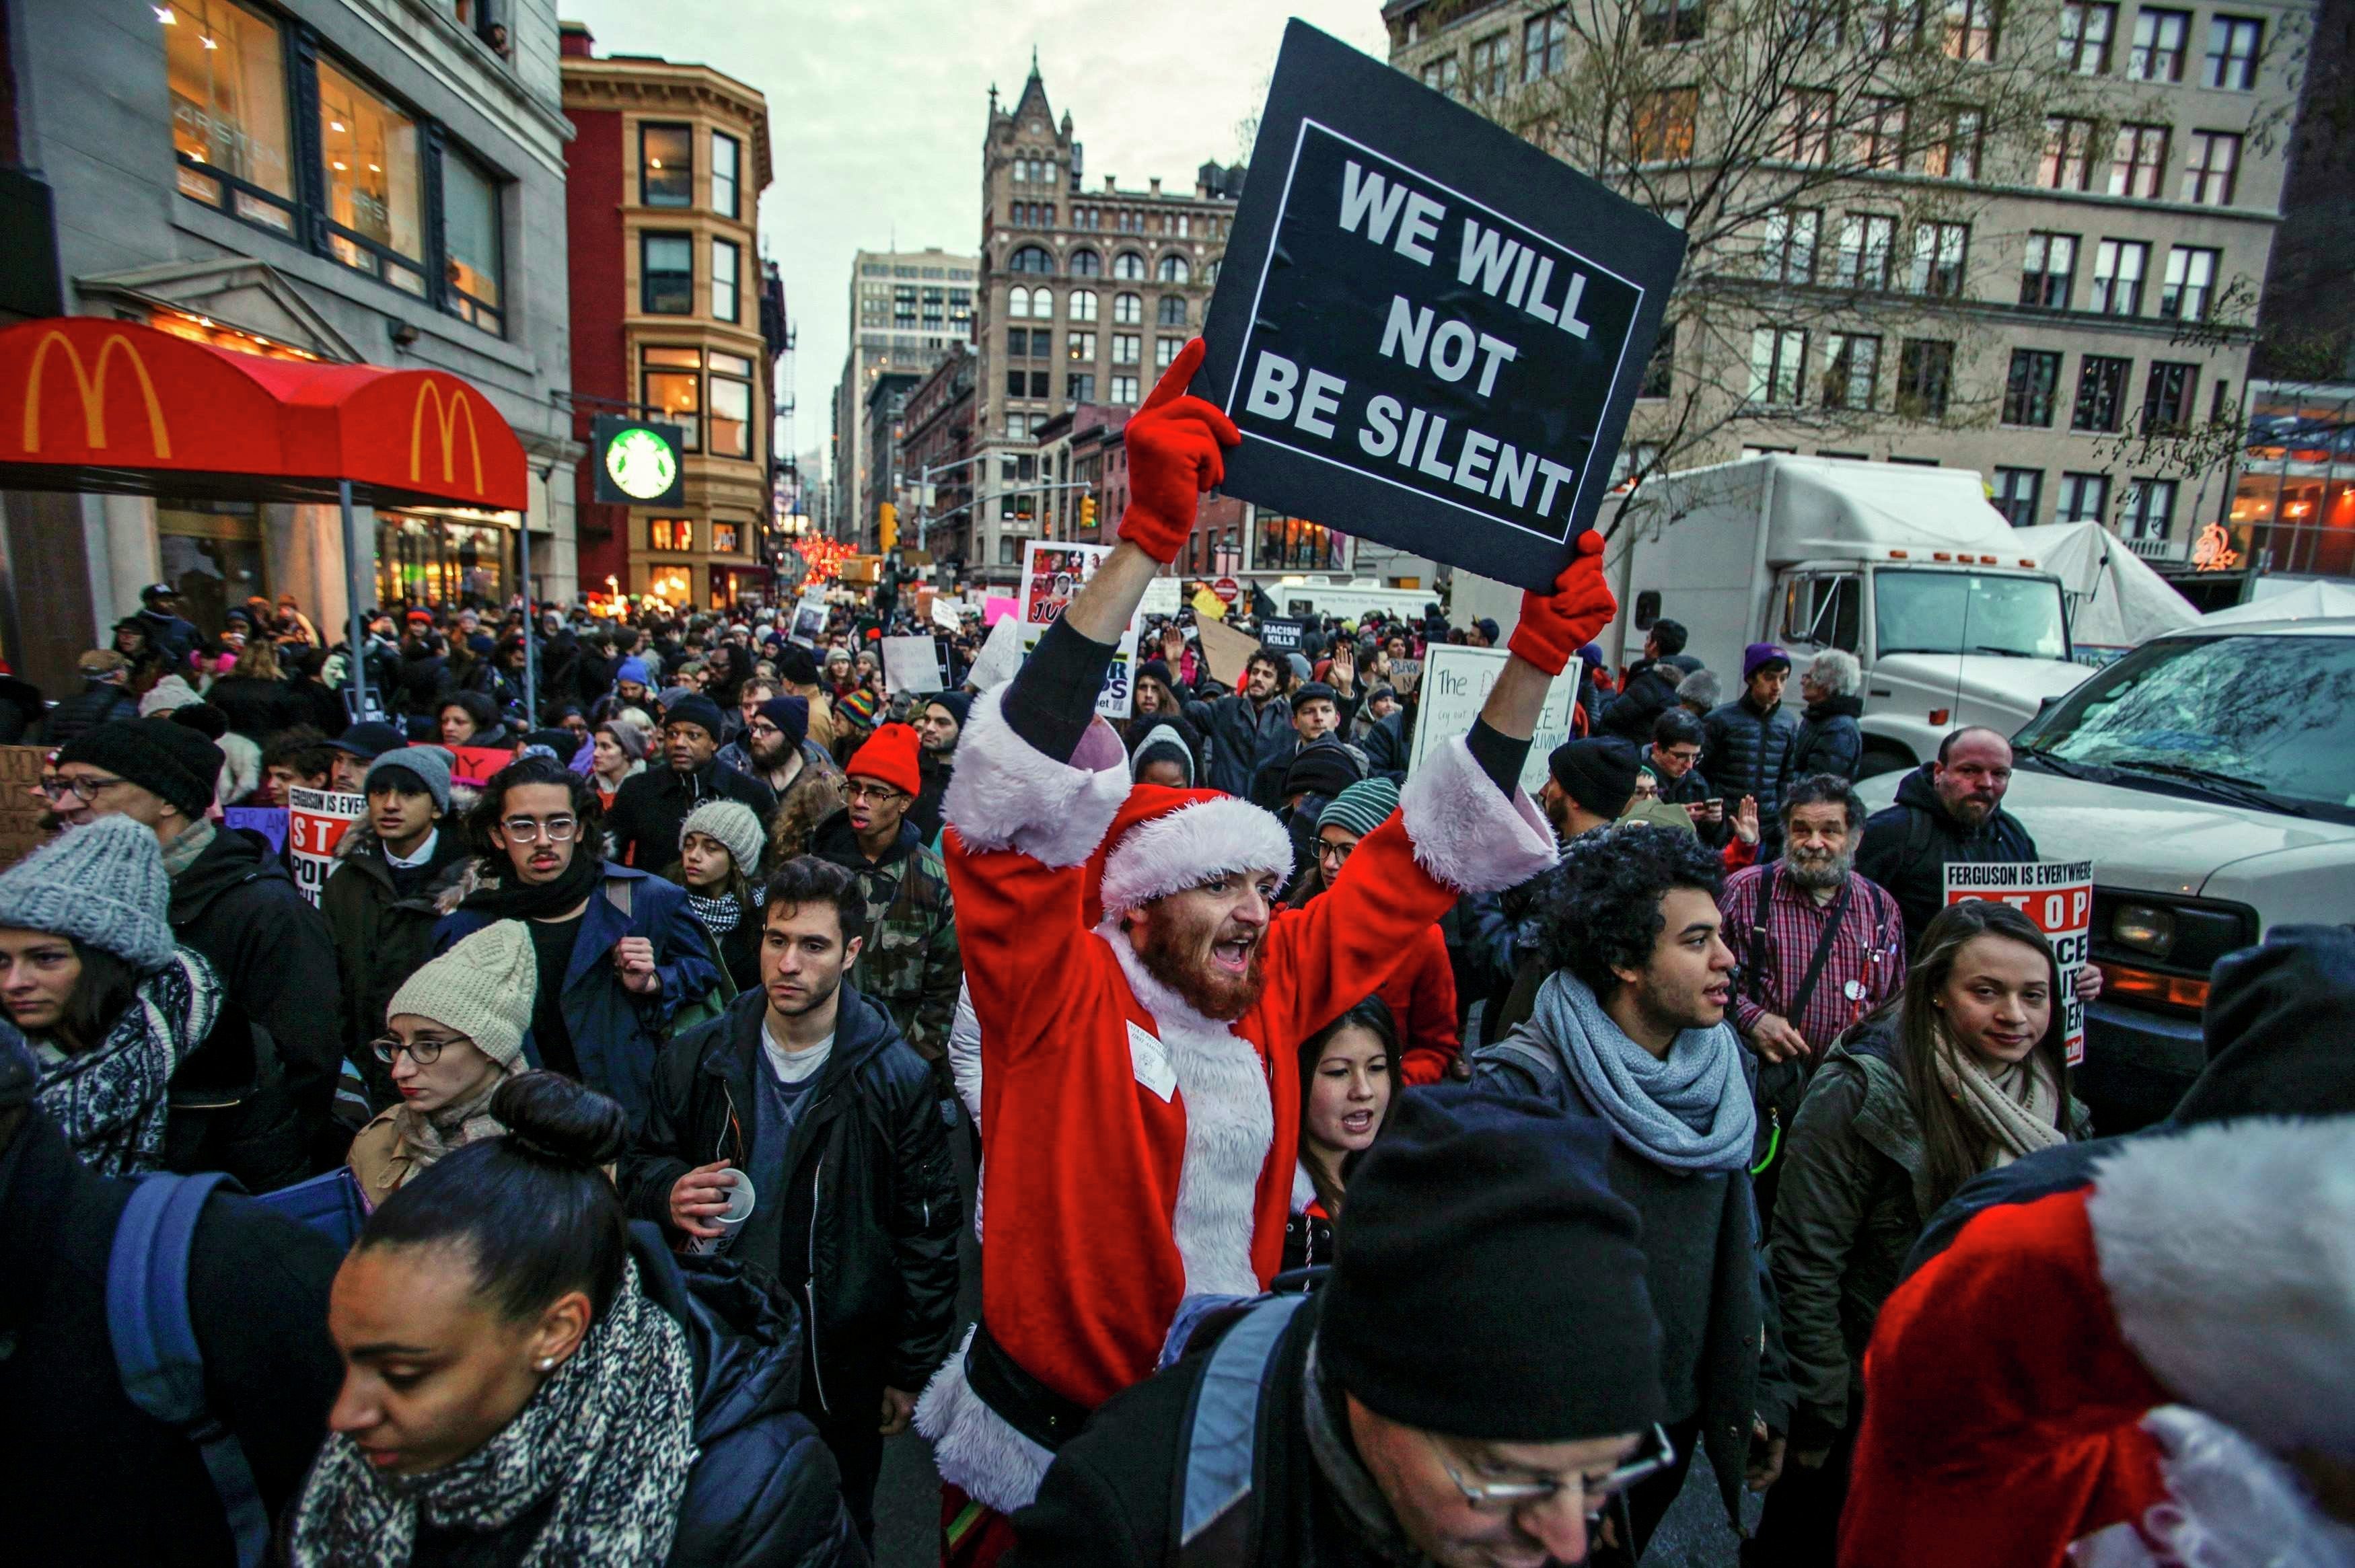 A man dressed as Santa Claus joins protesters in a march against police violence, in Midtown Manhattan, New York December 13, 2014